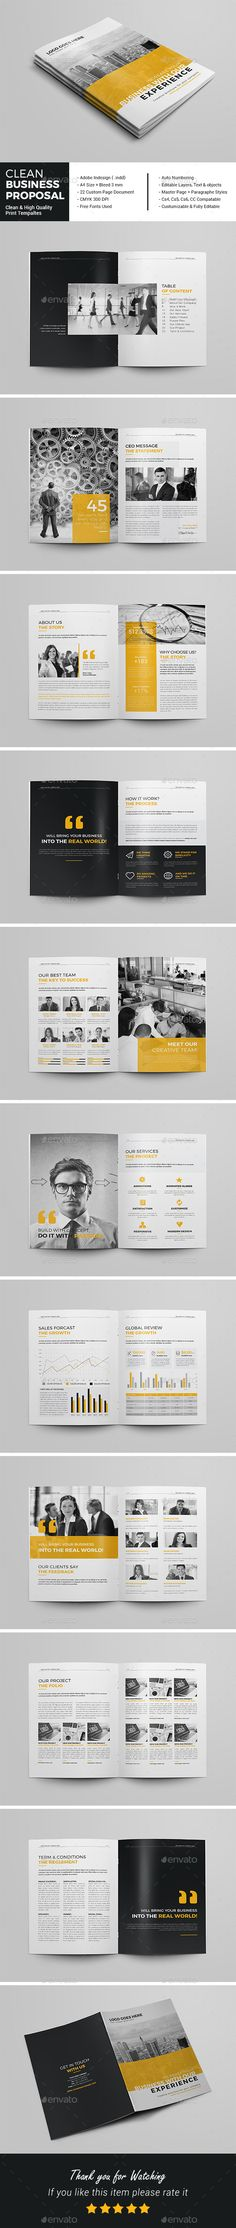 Proposal Proposal templates, Proposals and Project proposal - pricing proposal template